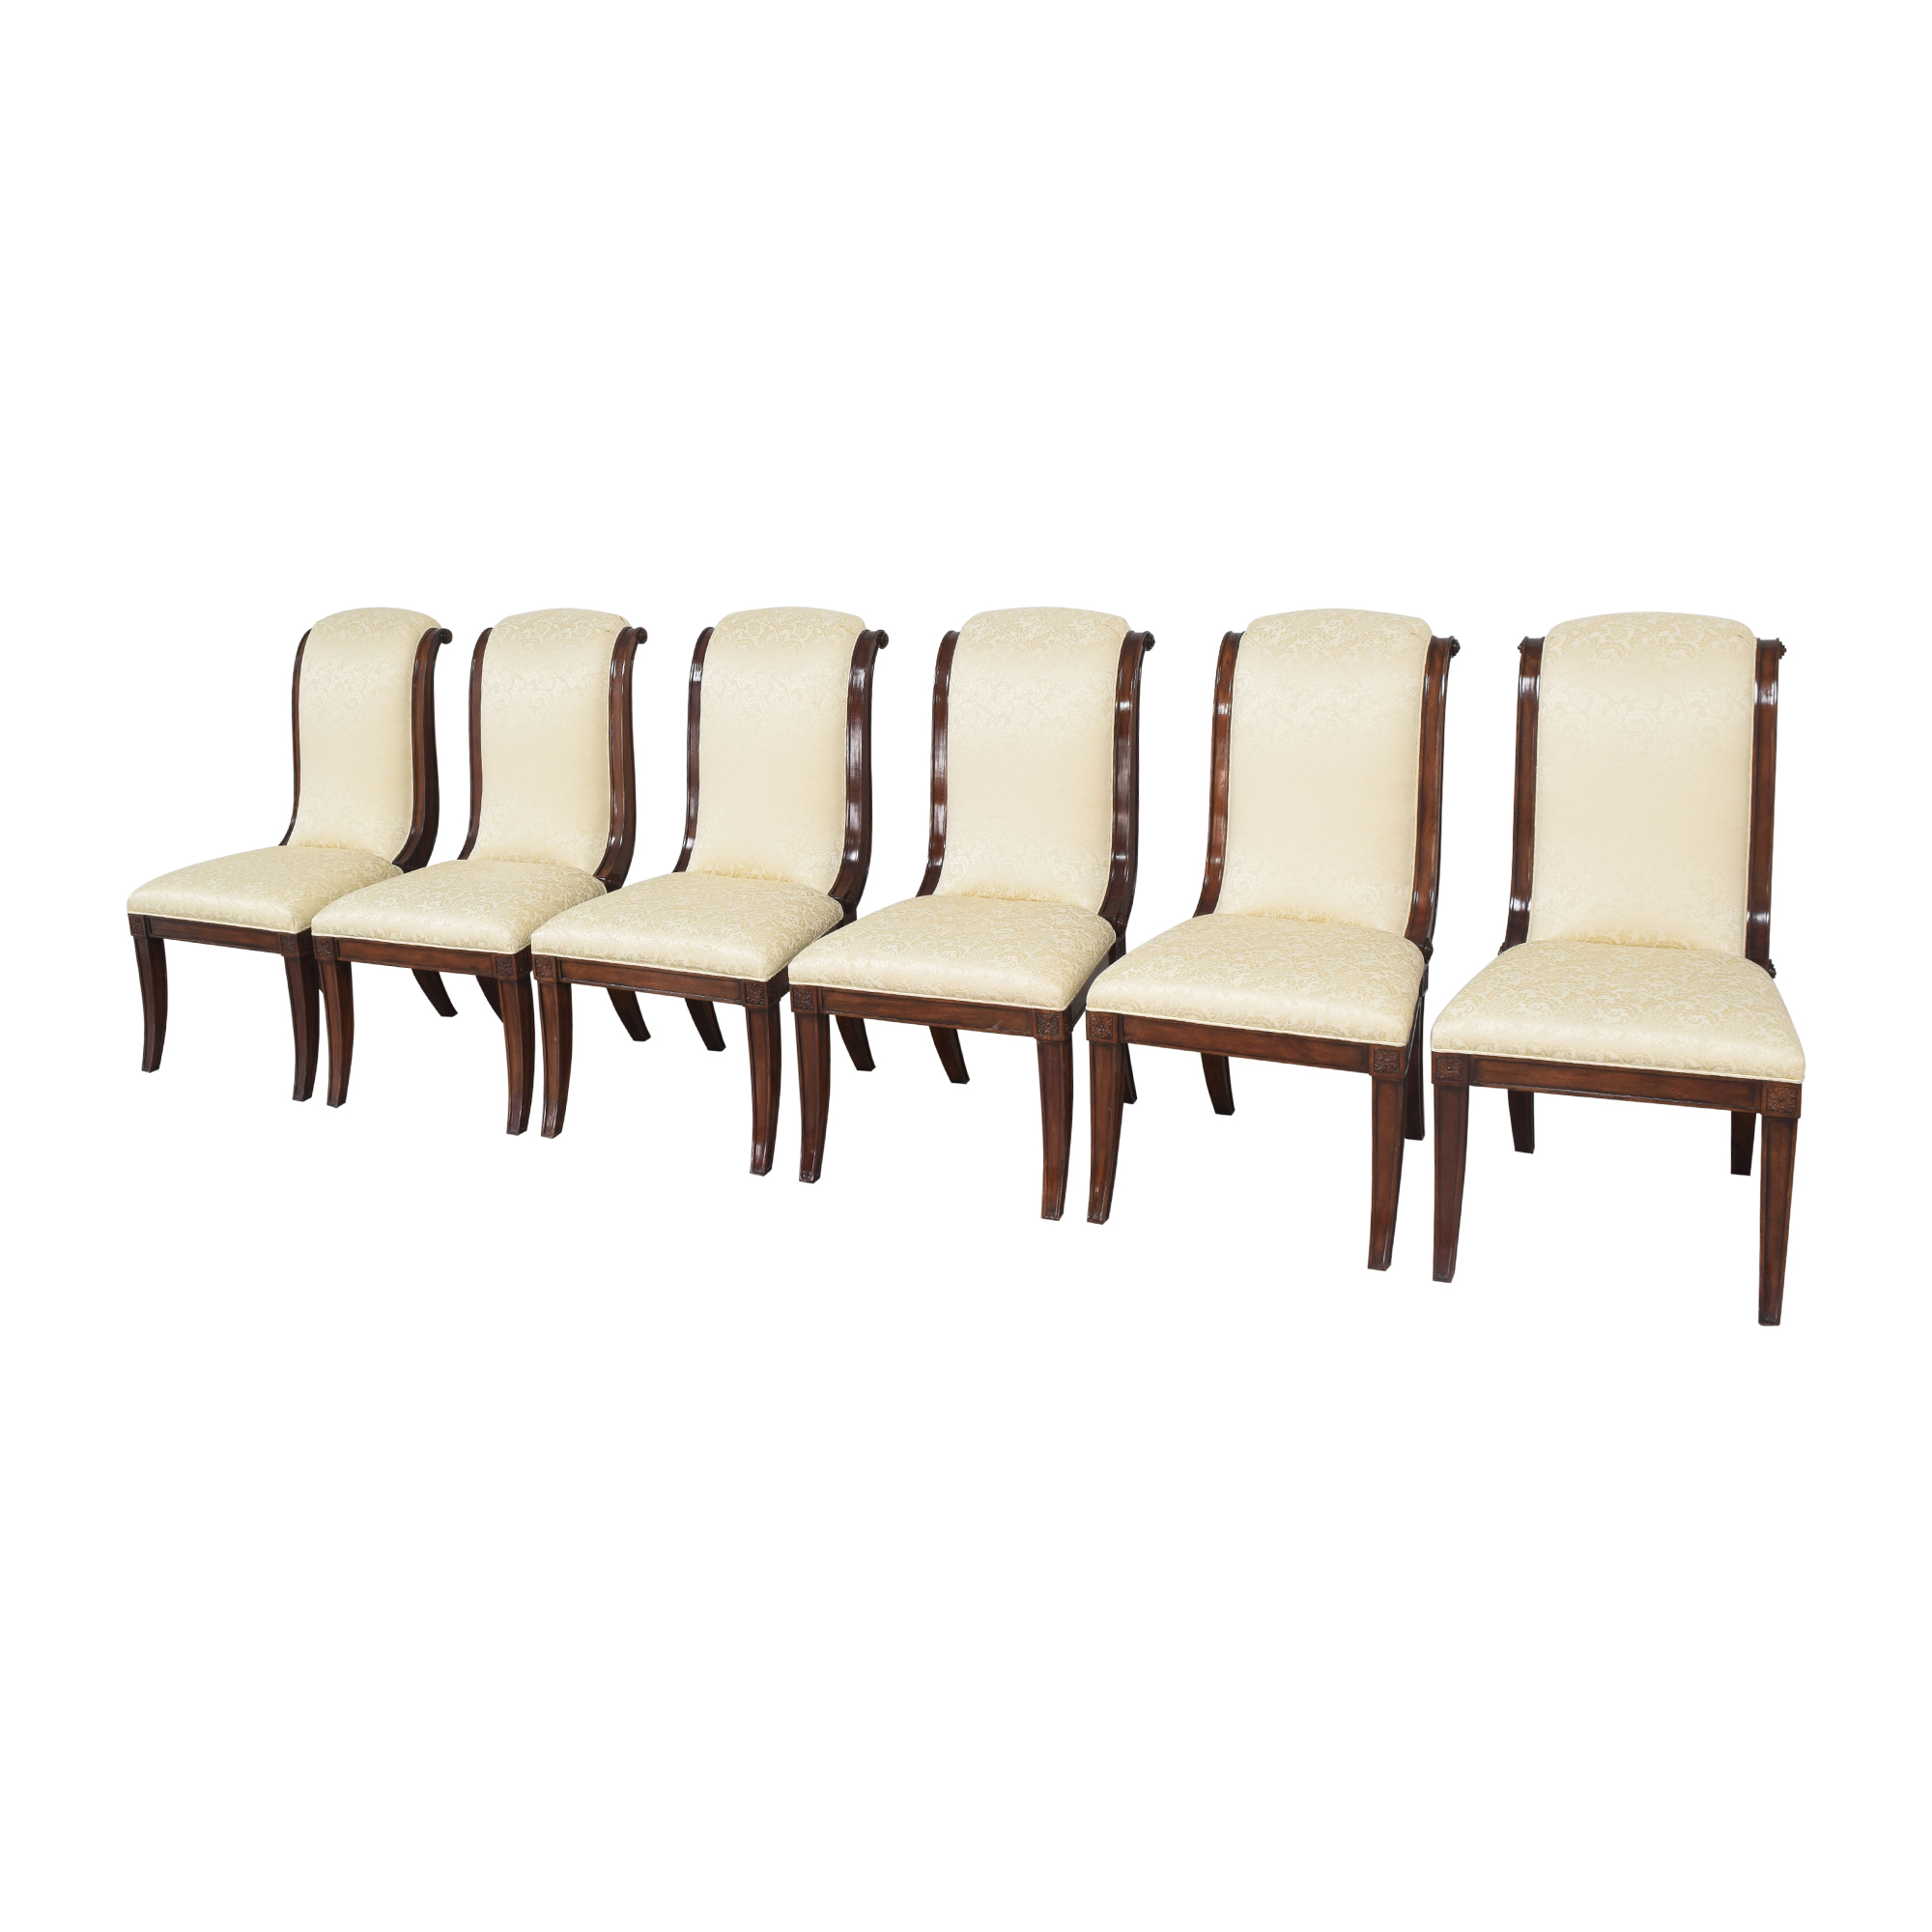 Theodore Alexander Theodore Alexander Gabrielle Side Chairs on sale